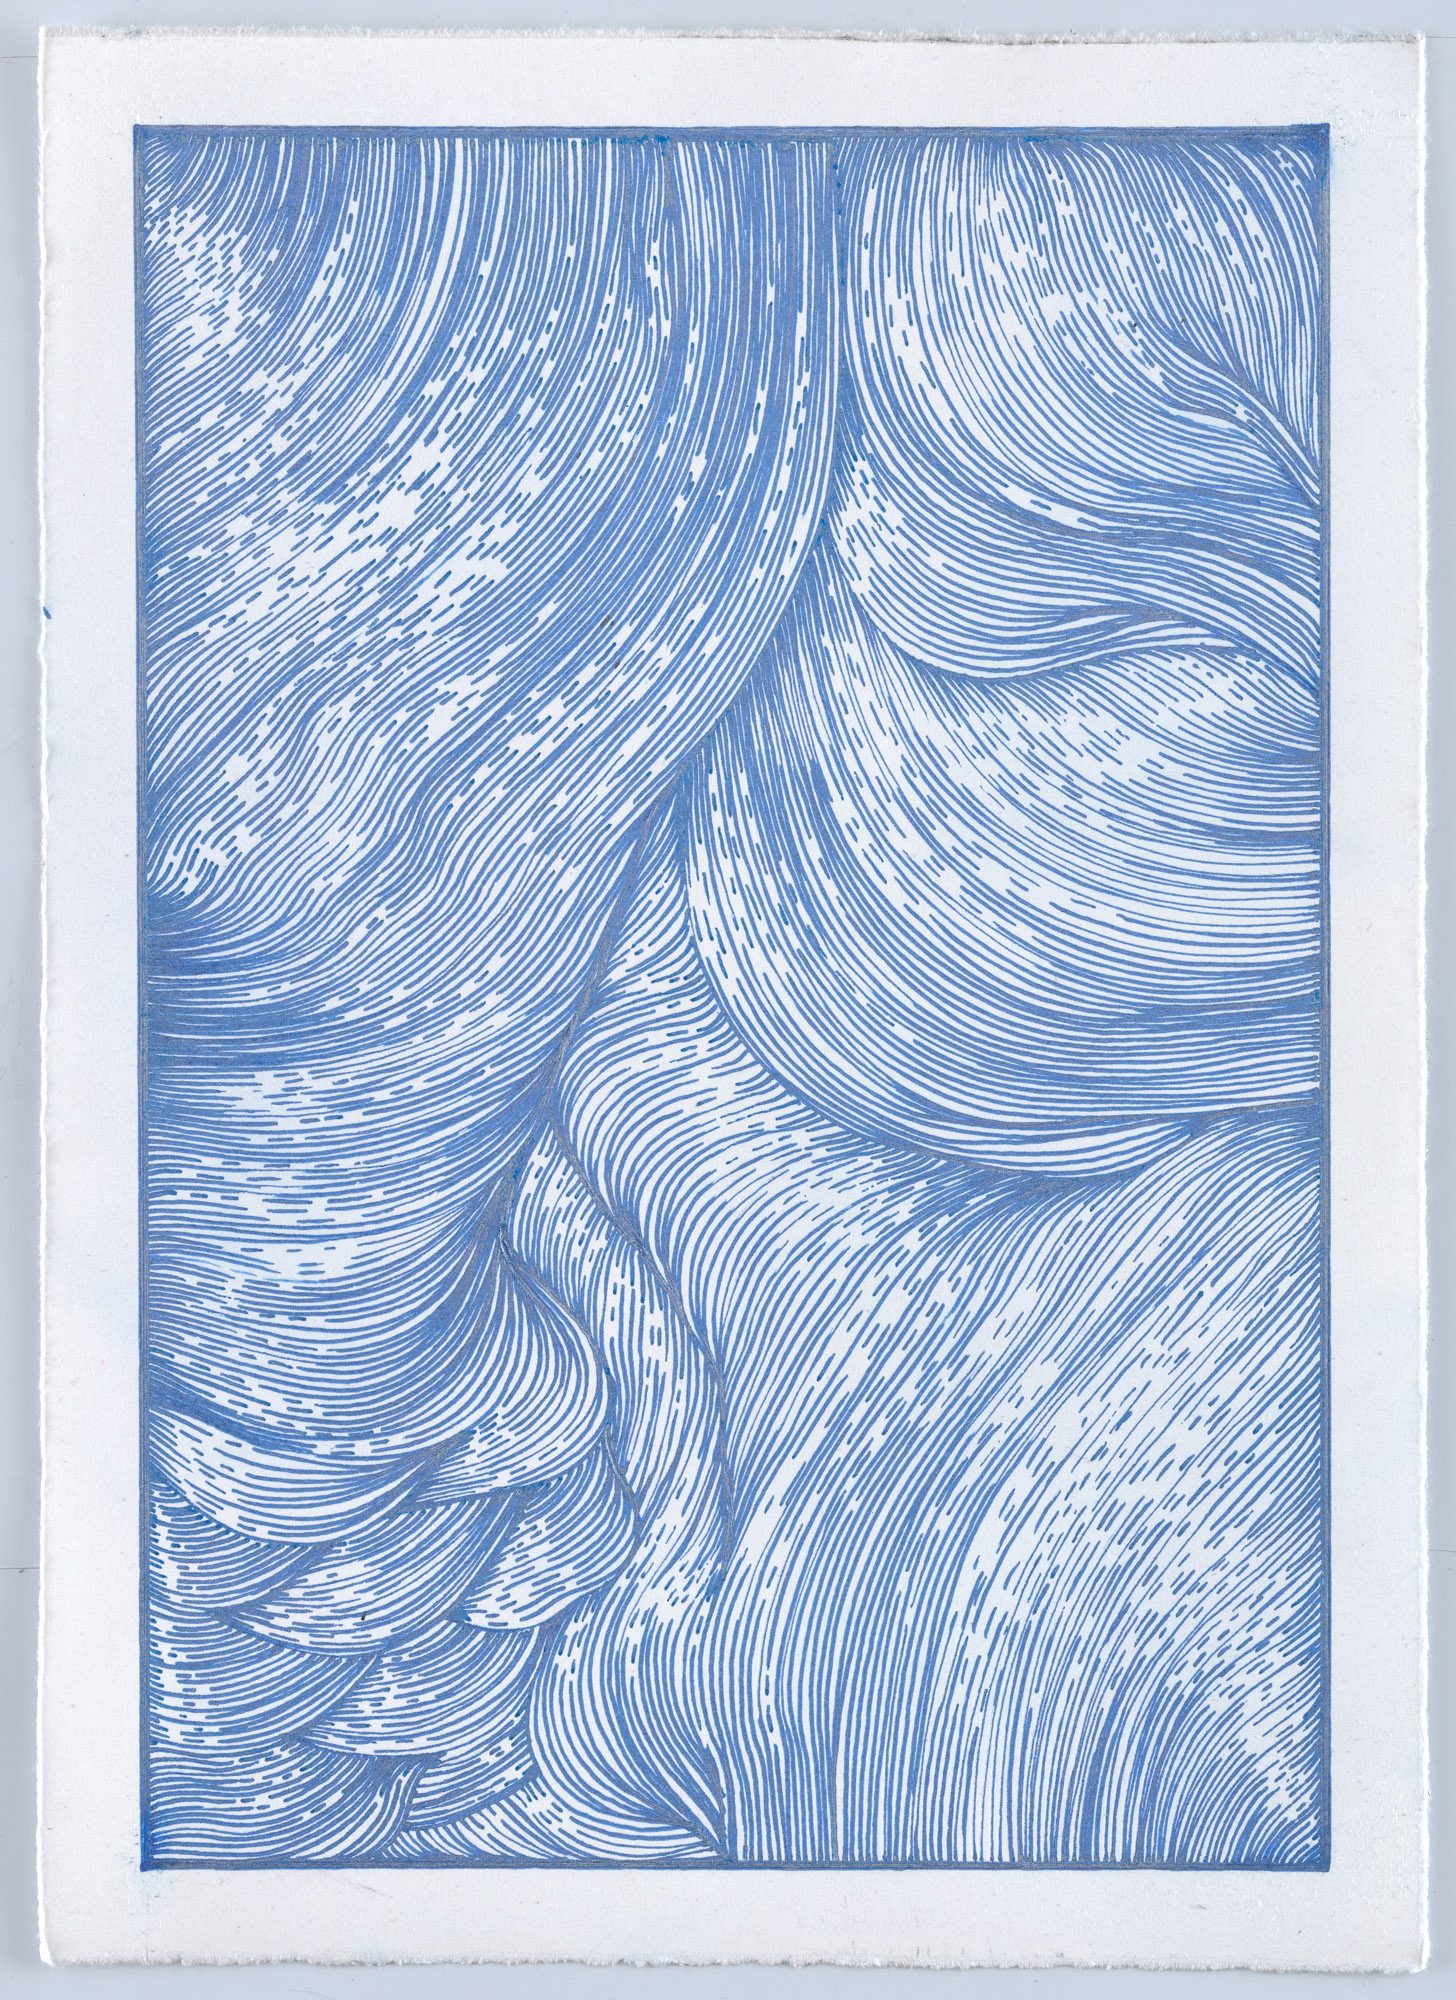 BK P13011 | untitled | blue metallic gloss paint marker on paper | 29,5x21cm | 2016 | privat collection berlin